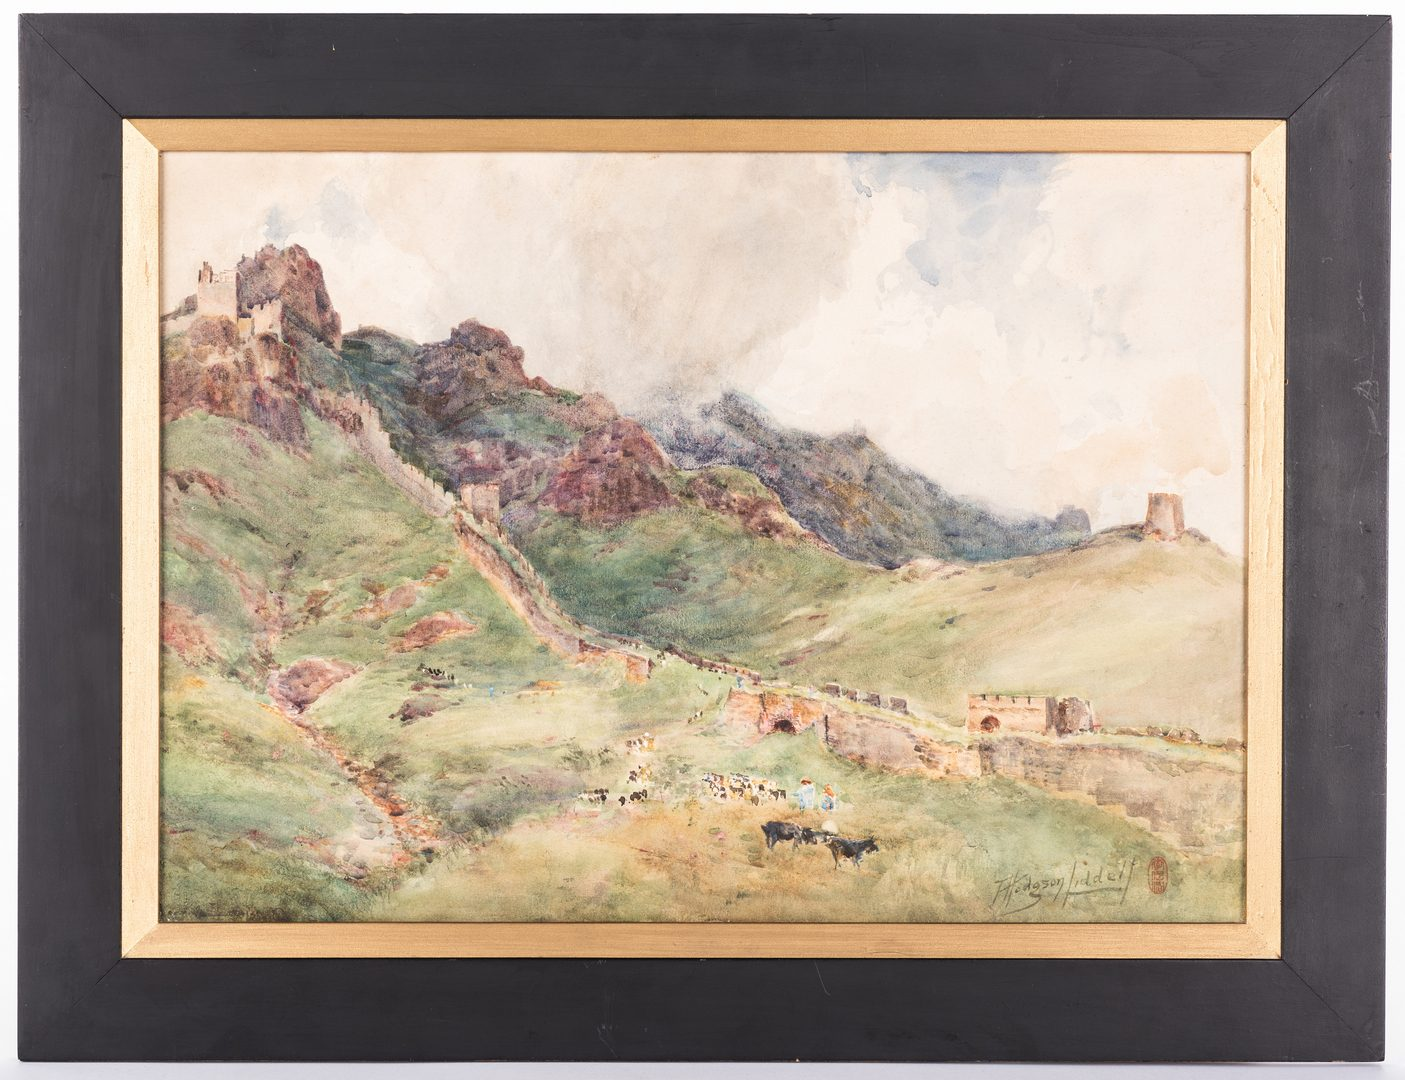 Lot 34: Thomas H. Liddell Asian Landscape Watercolor